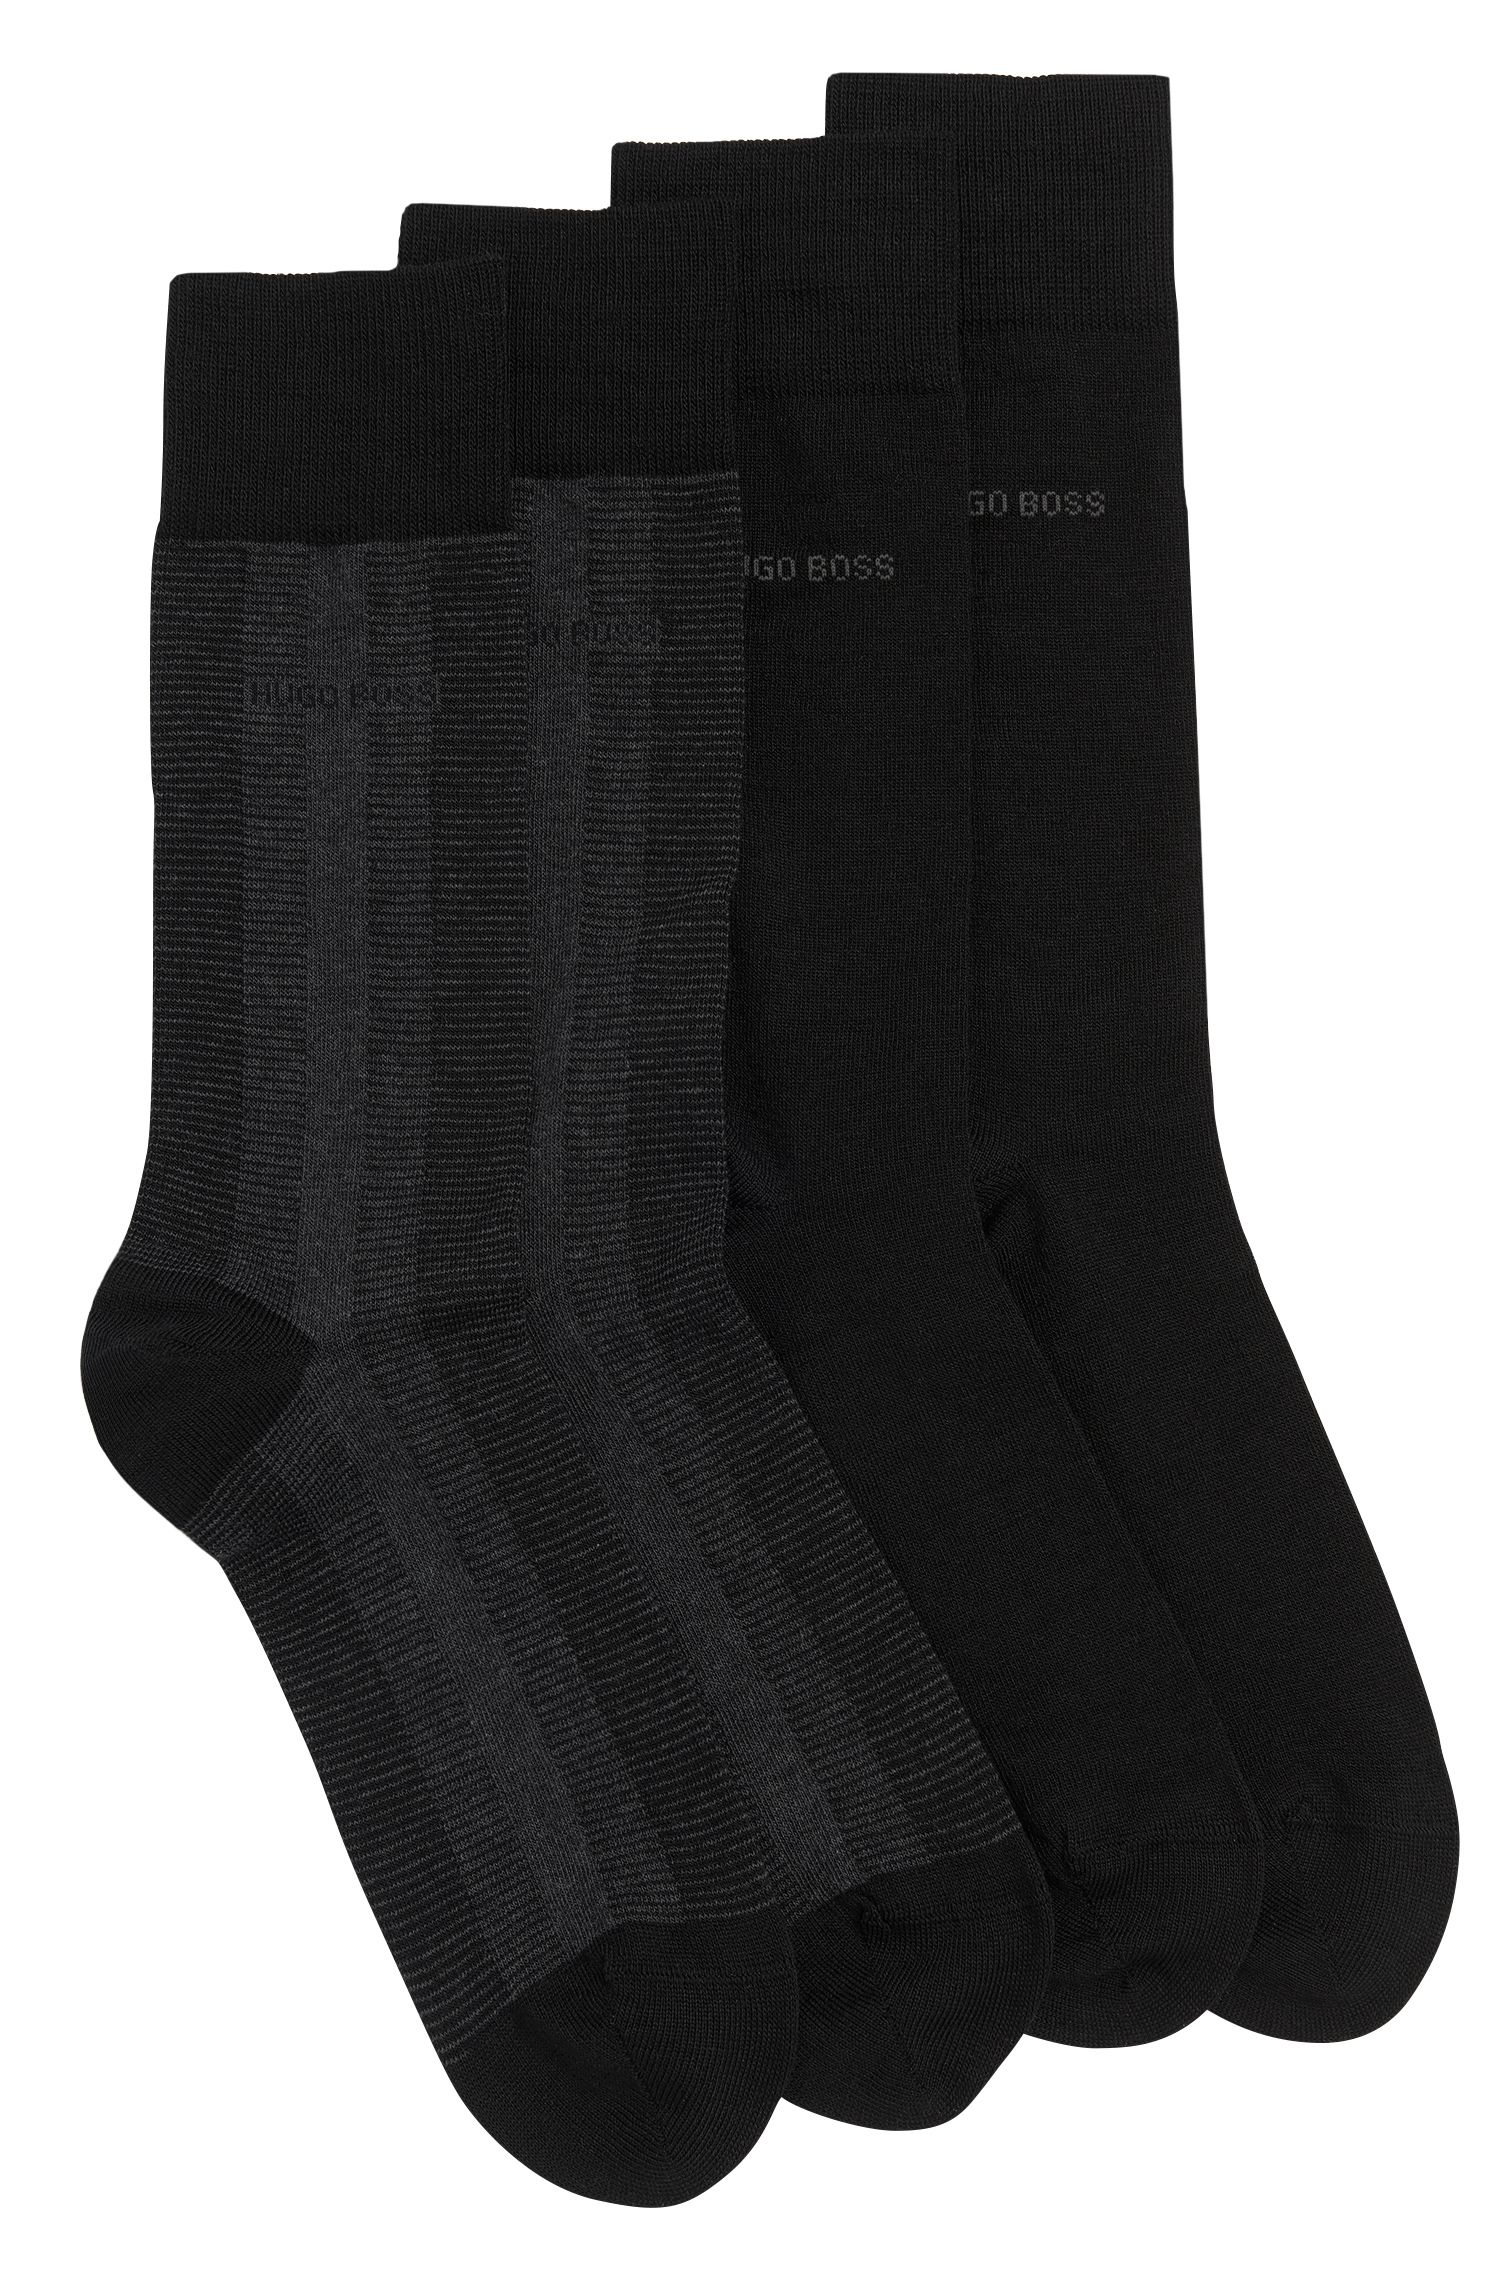 Socks double pack in a wool blend with cotton: 'Twopack RS Design'